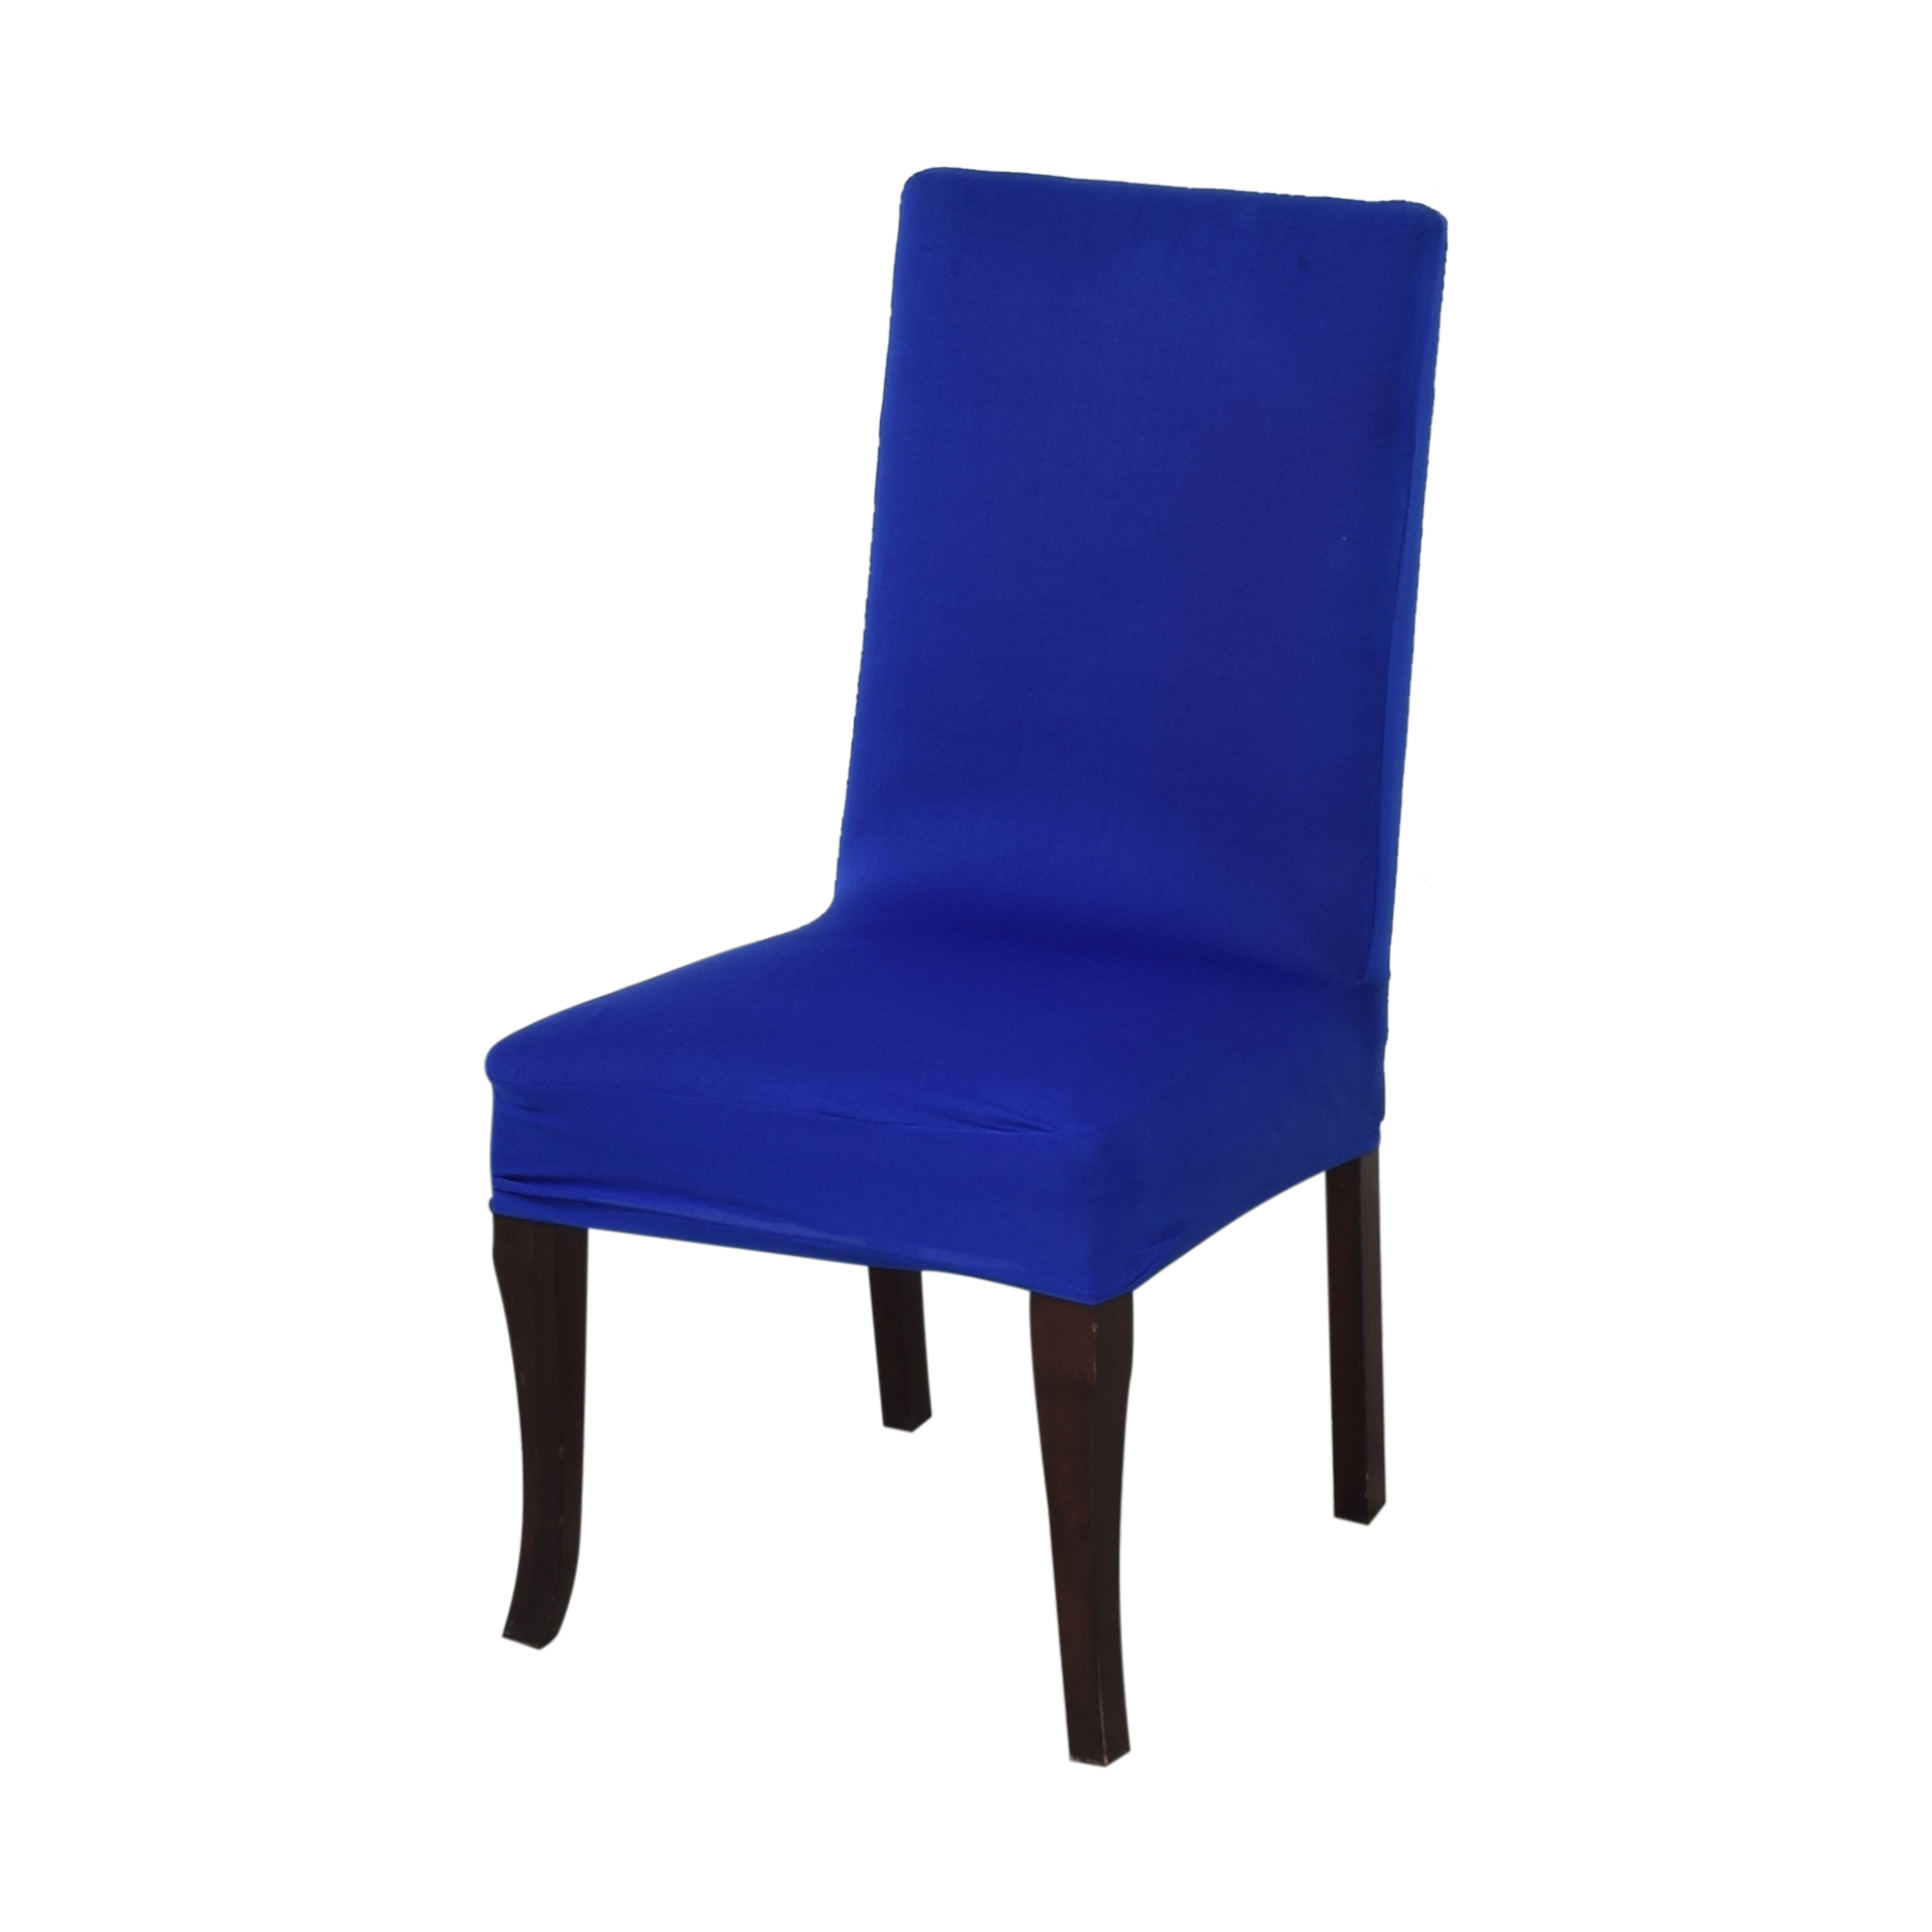 Ballard Designs Upholstered Couture Chairs sale